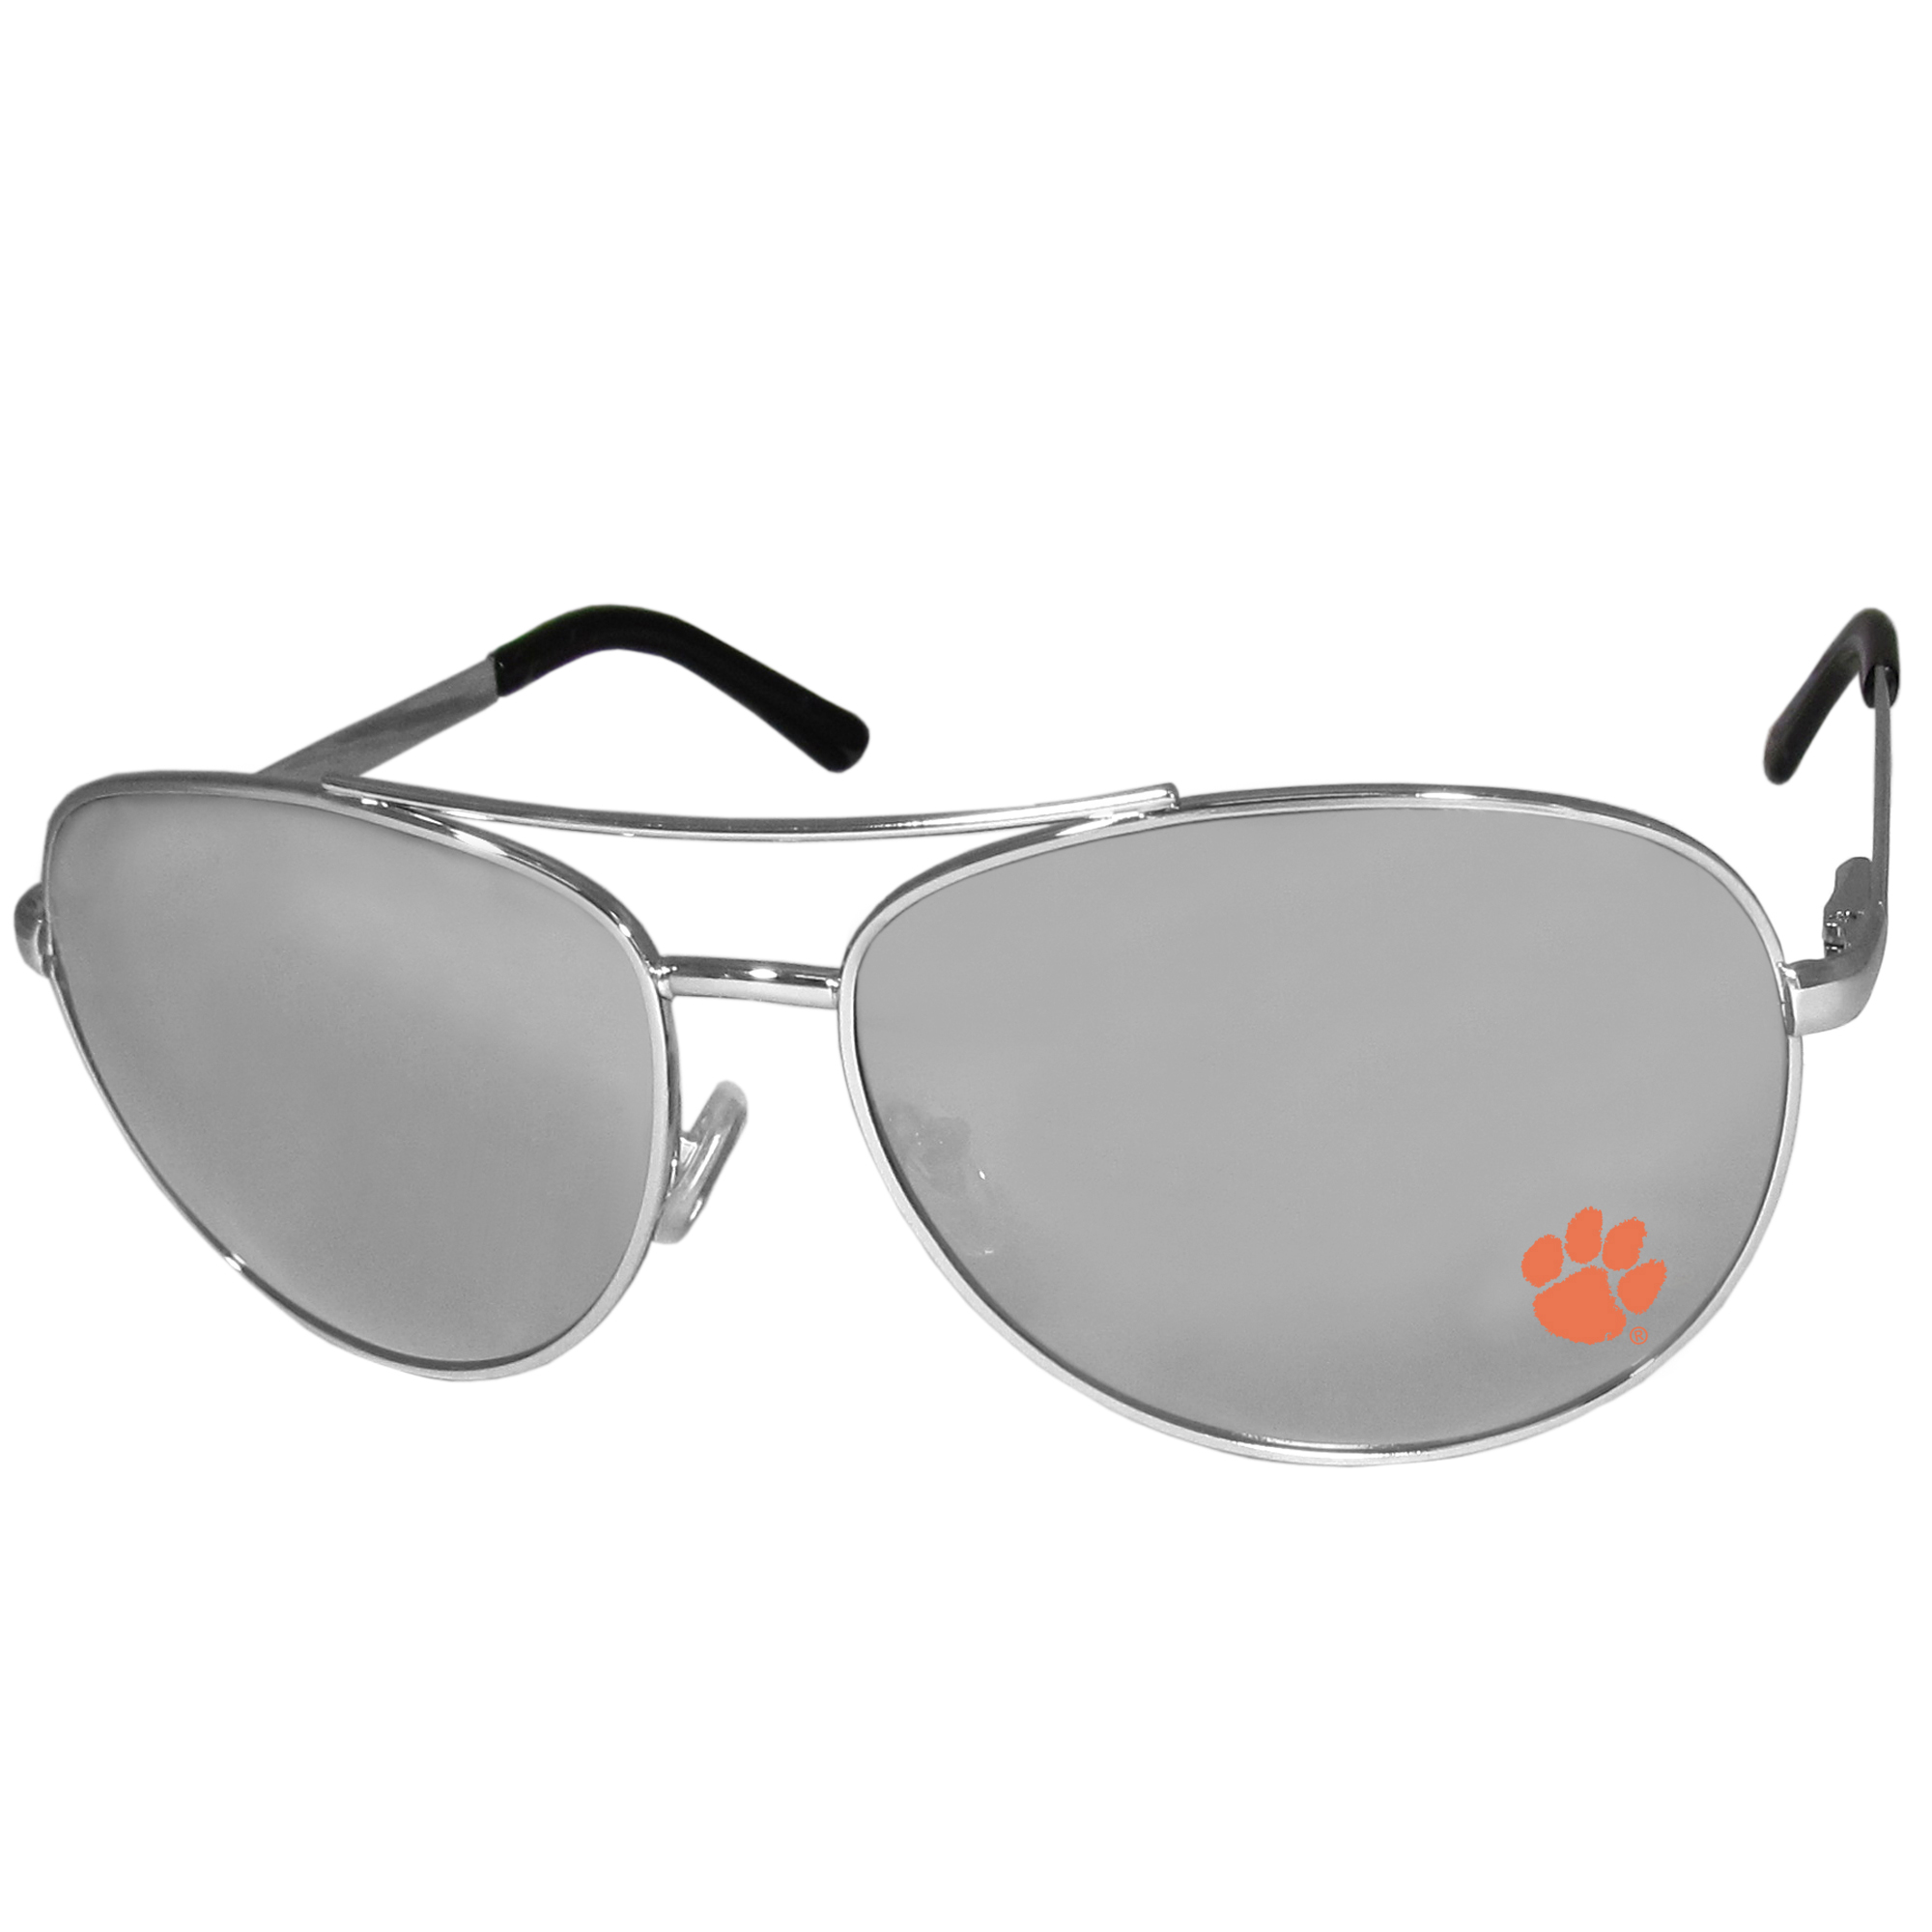 Clemson Tigers Aviator Sunglasses - Our aviator sunglasses have the iconic aviator style with mirrored lenses and metal frames. The glasses feature a silk screened Clemson Tigers logo in the corner of the lense. 100% UVA/UVB protection.